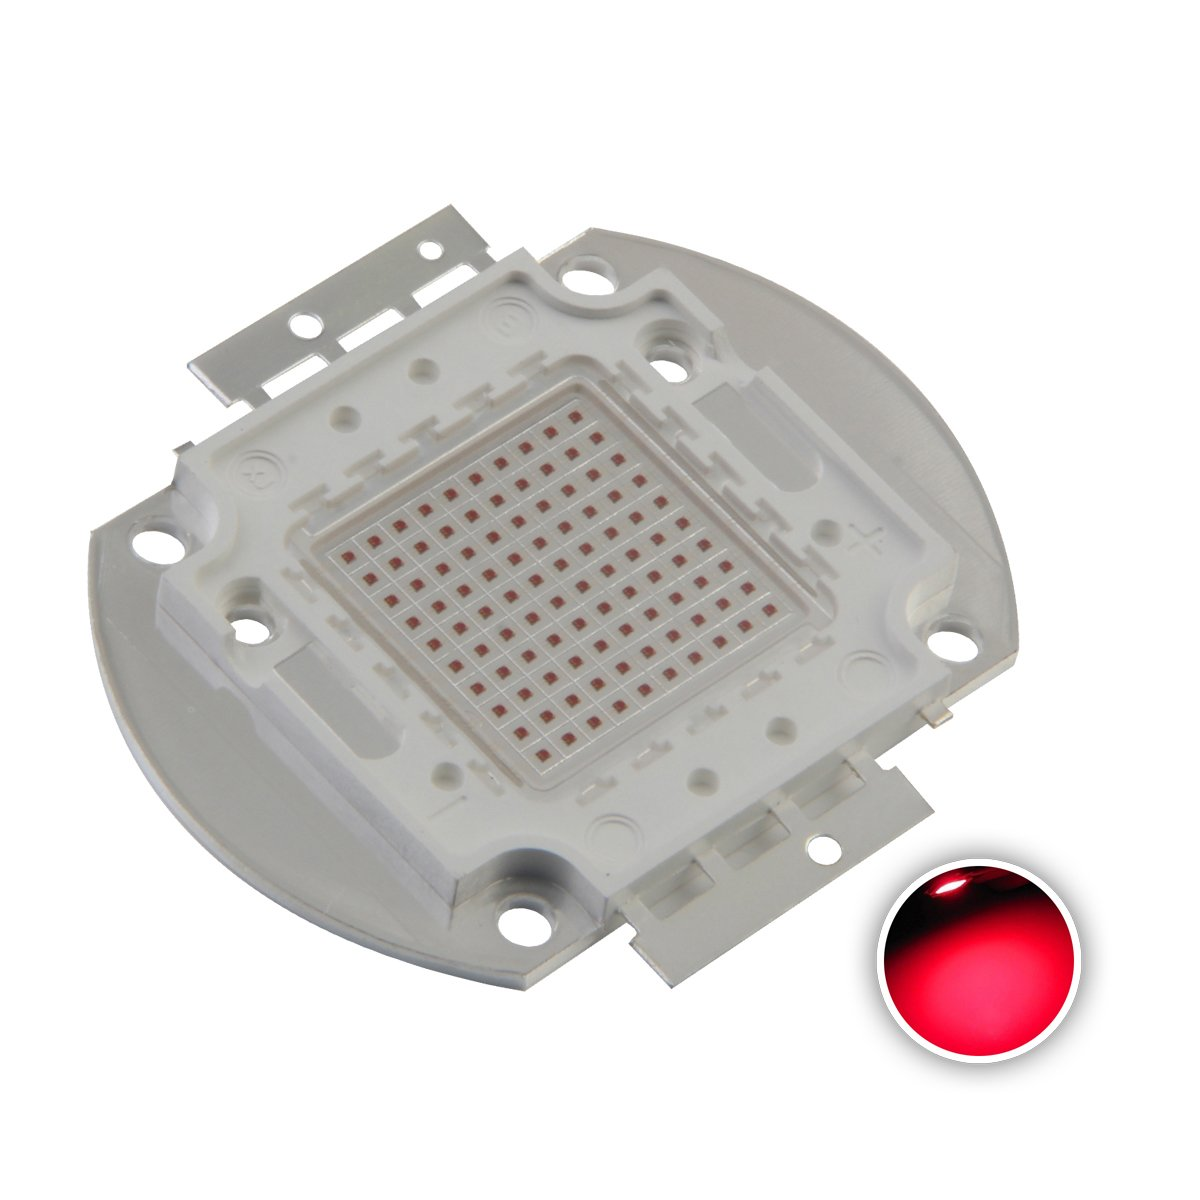 Chanzon High Power Led Chip 100W Red (3000mA/DC 20V-24V/100 Watt) Super Bright Intensity SMD COB Light Emitter Components Diode 100 W Bulb Lamp Beads DIY Lighting